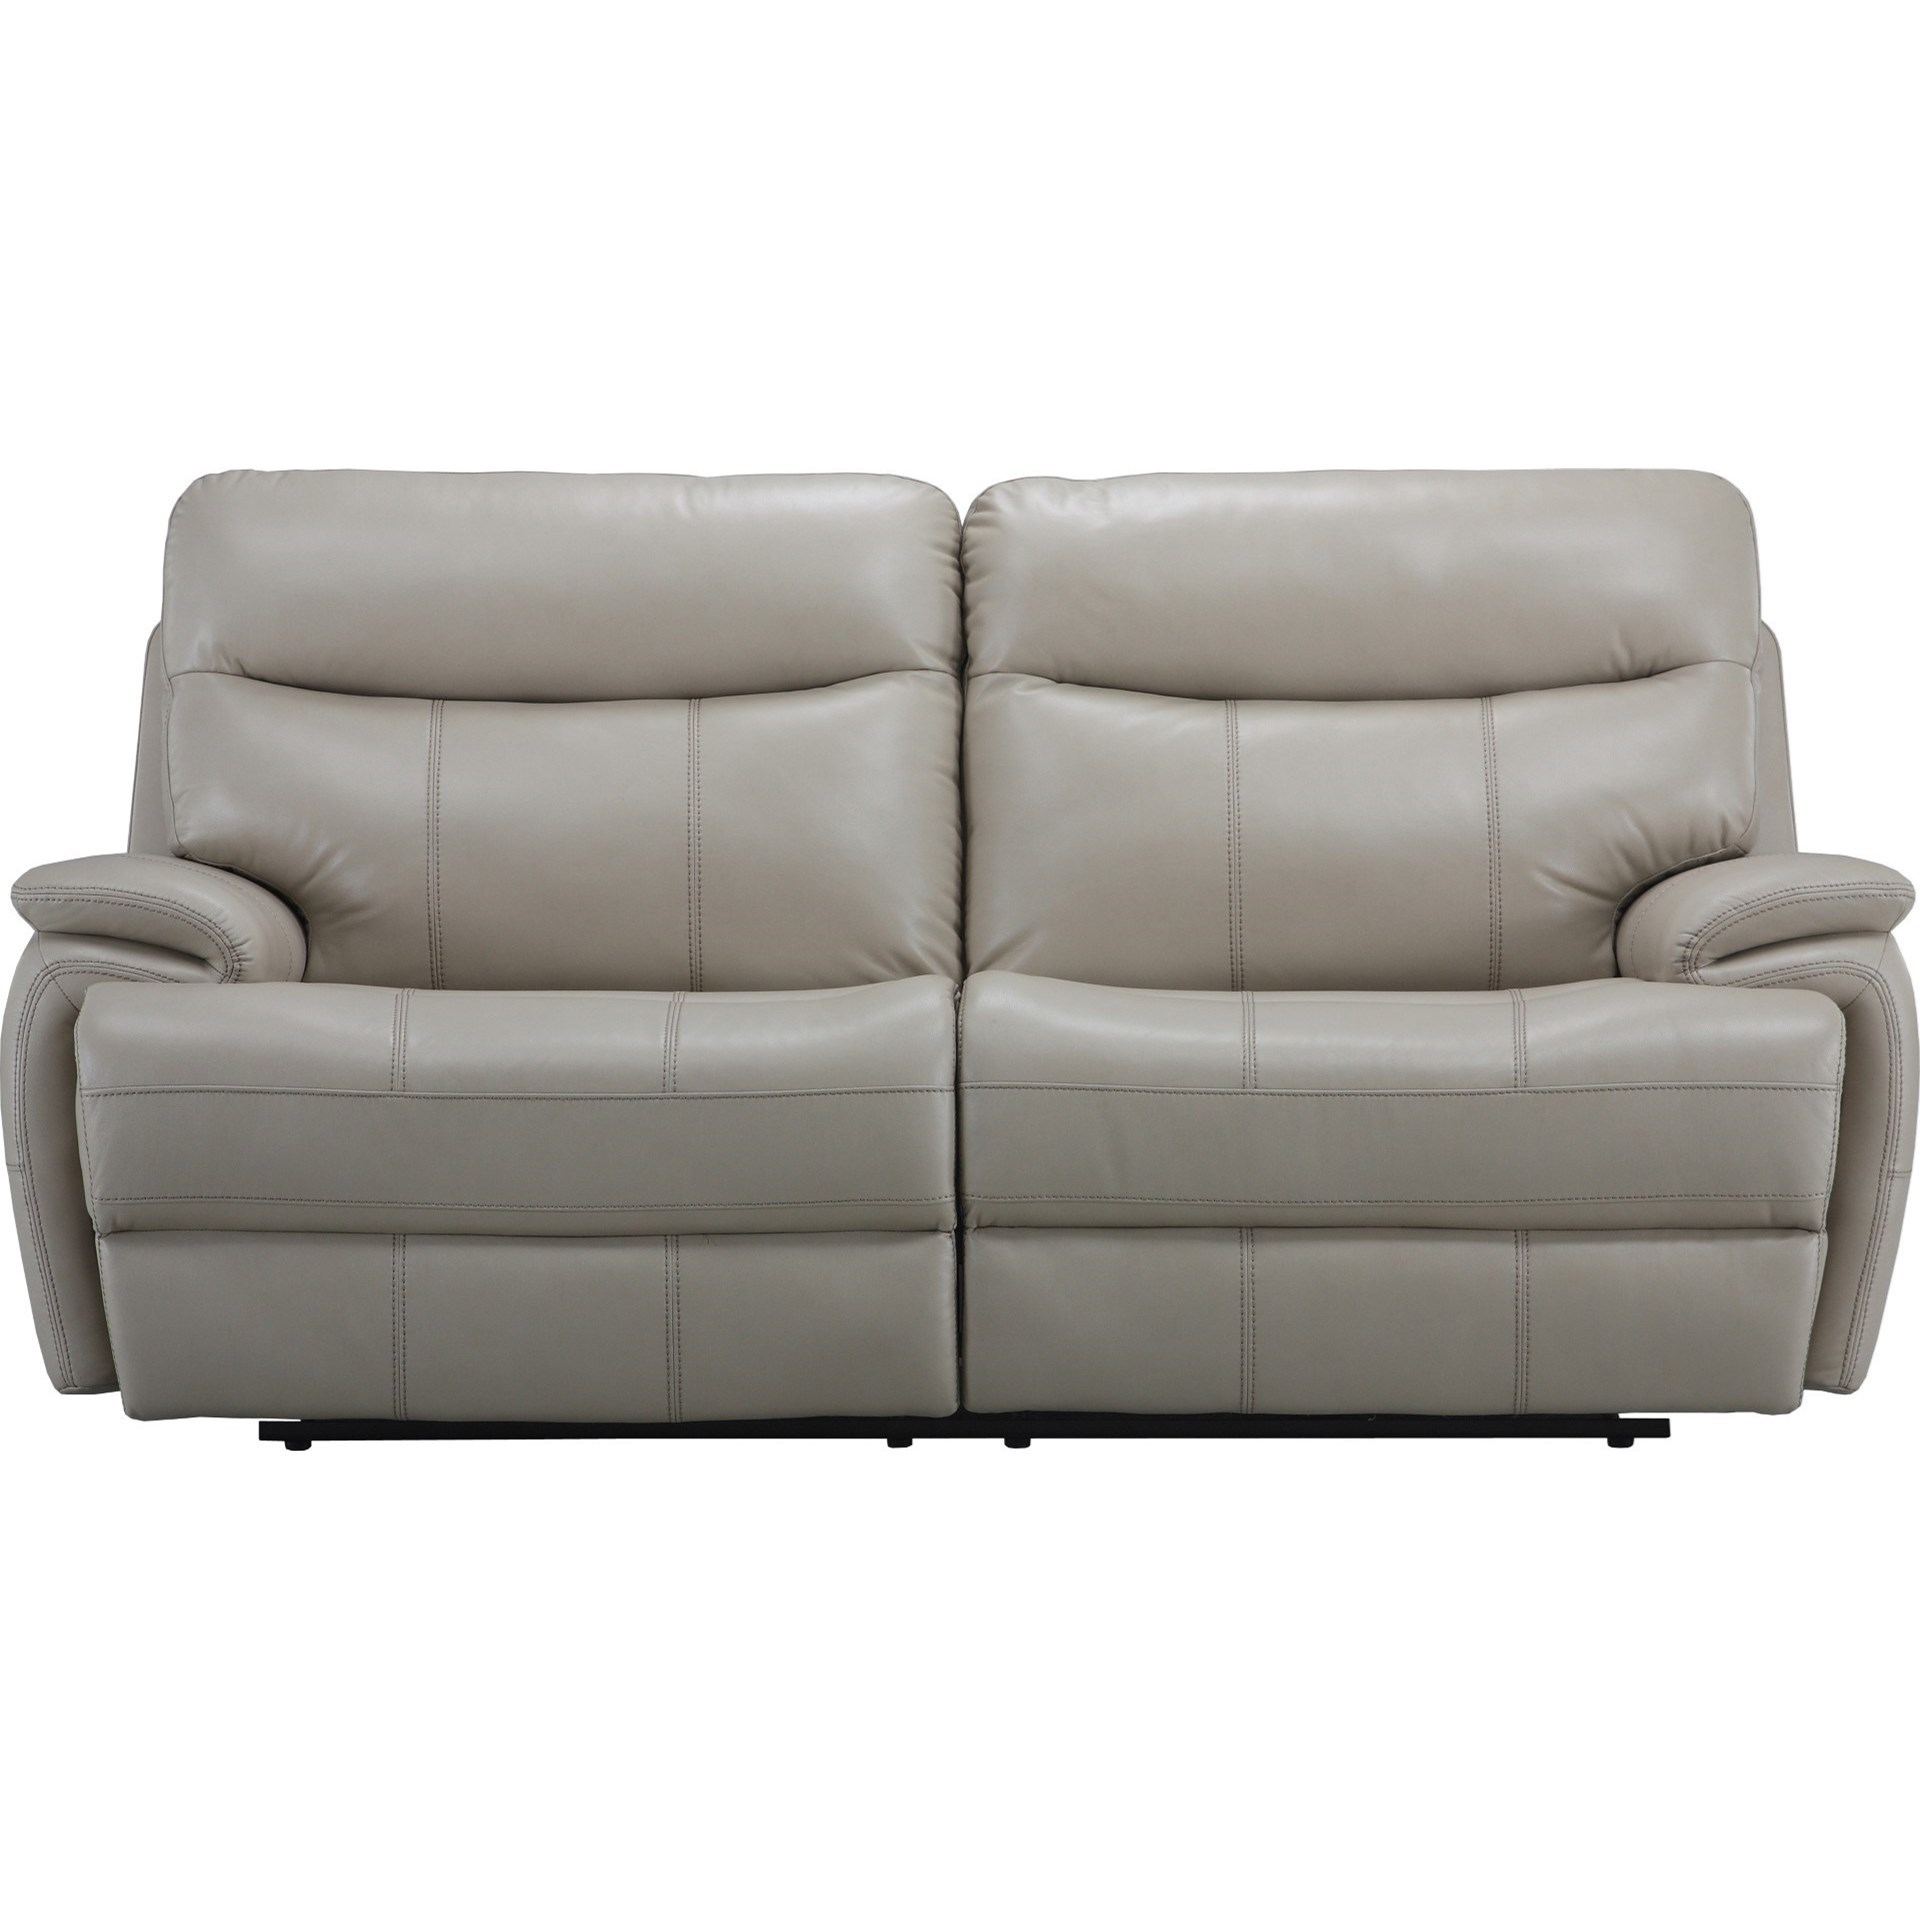 Parker Living Dylan Dual Reclining Two Cushion Sofa - Item Number: MDYL-832P-CRE